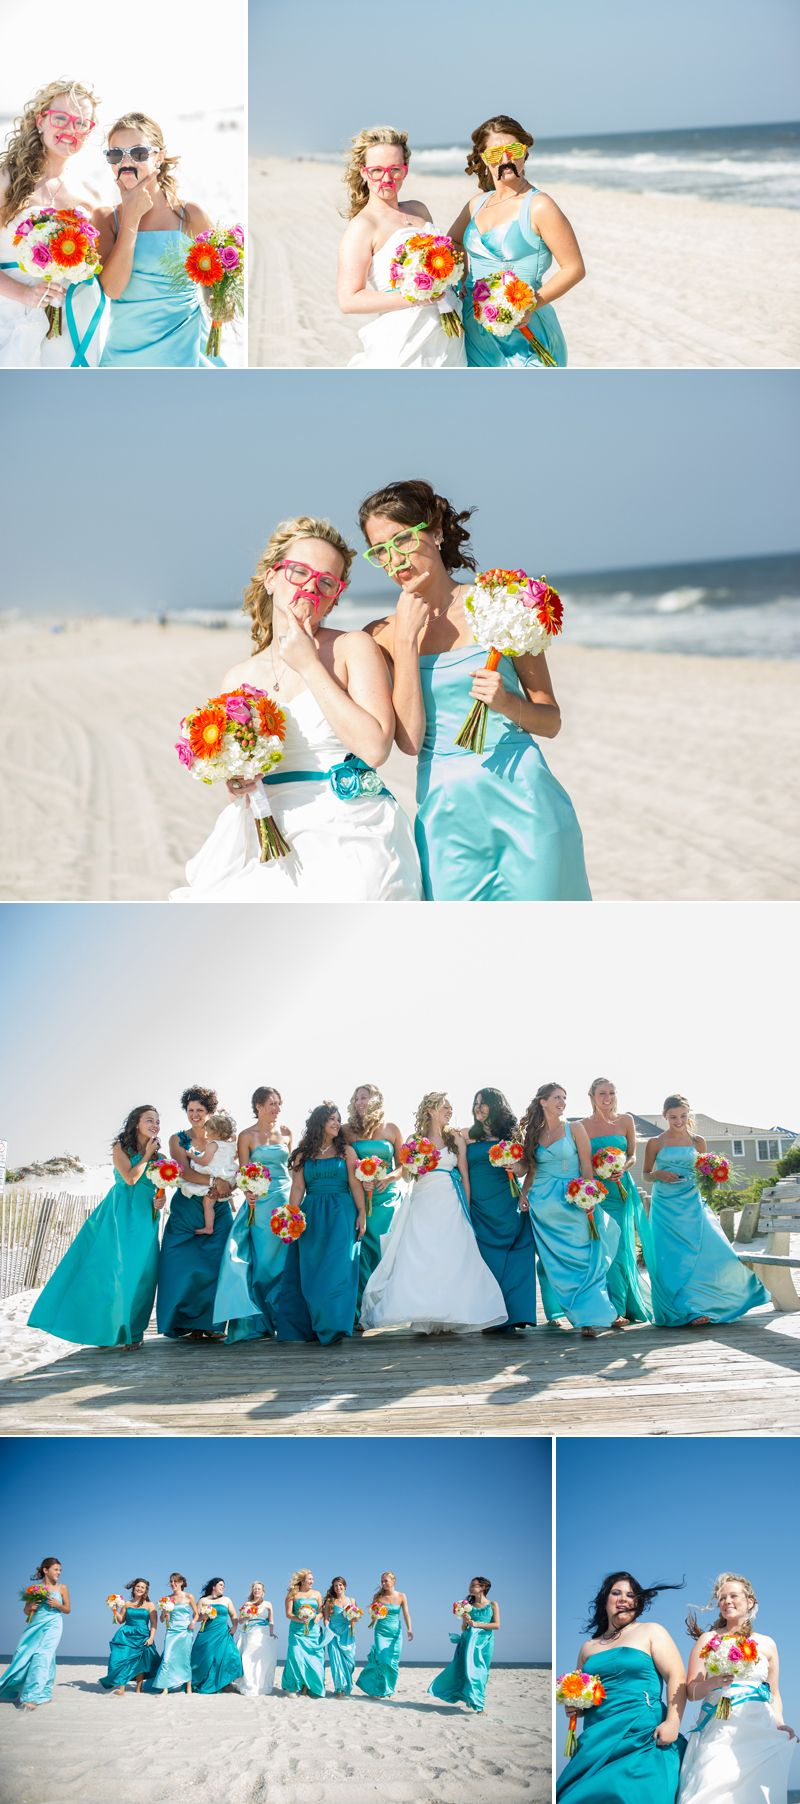 Love the variation of blues in the bmsu dresses and the colors